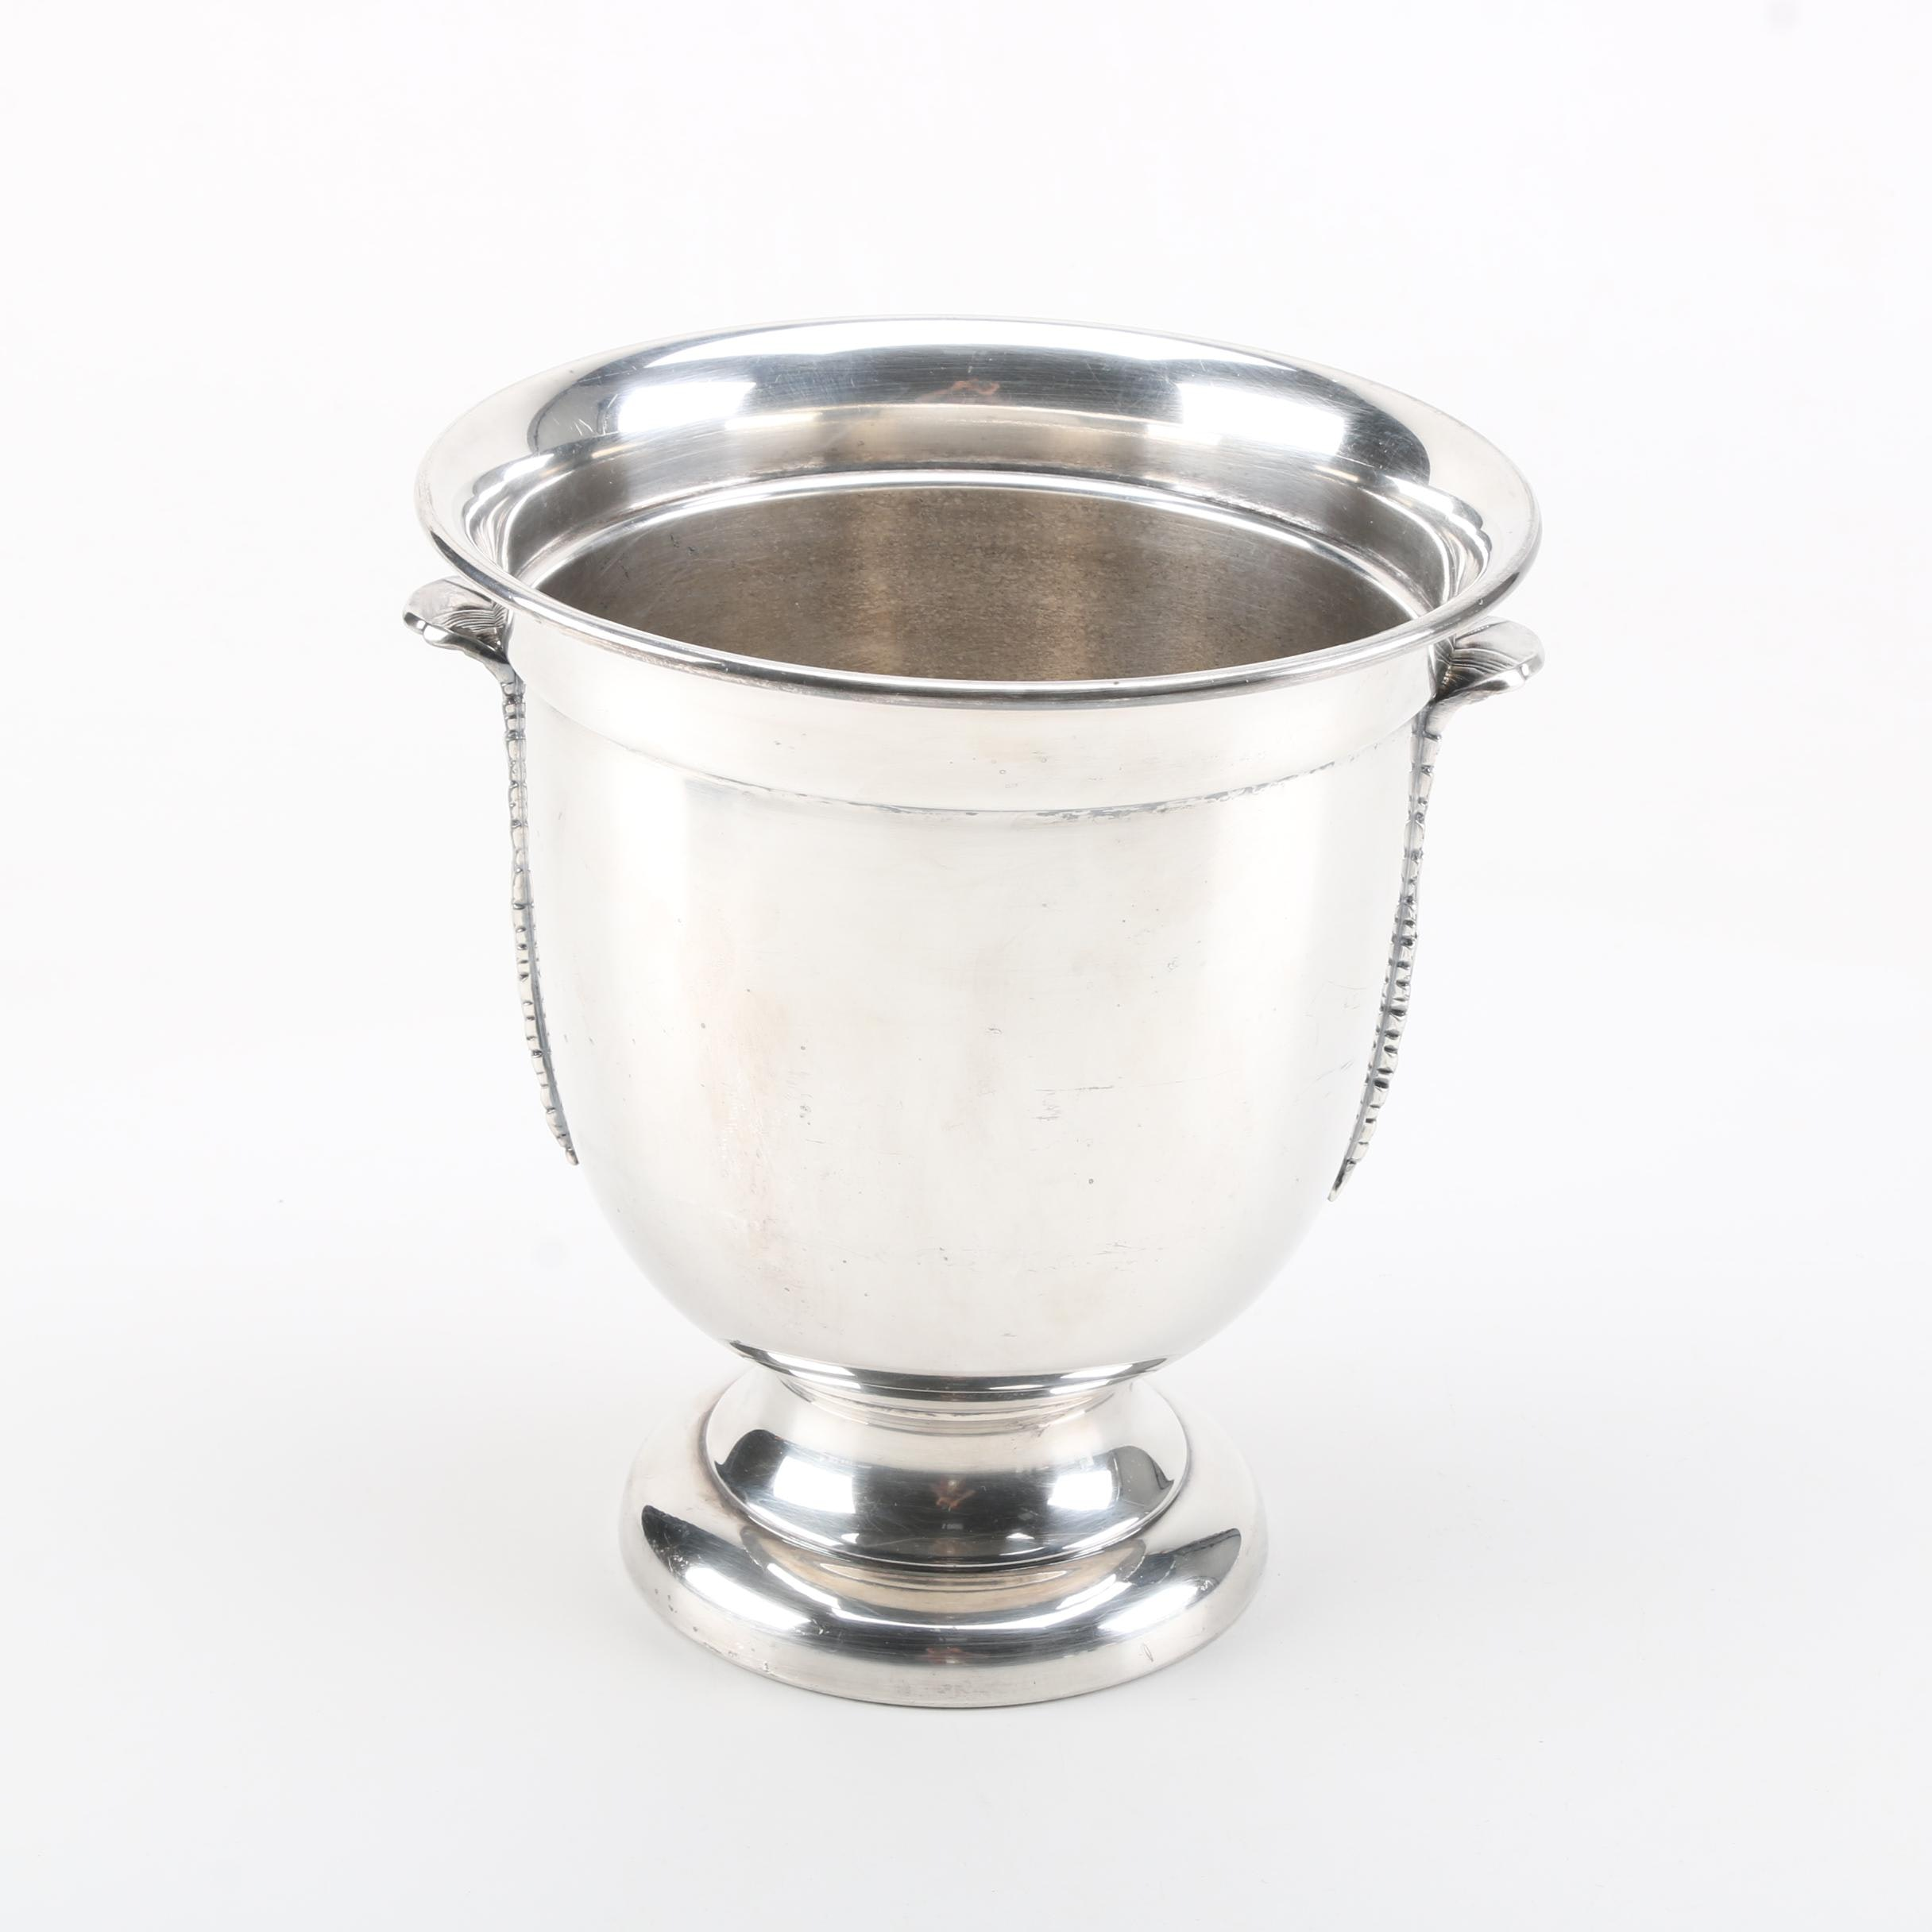 The Sheffield Silver Co. Silver Plate Acanthus Leaf Champagne Cooler